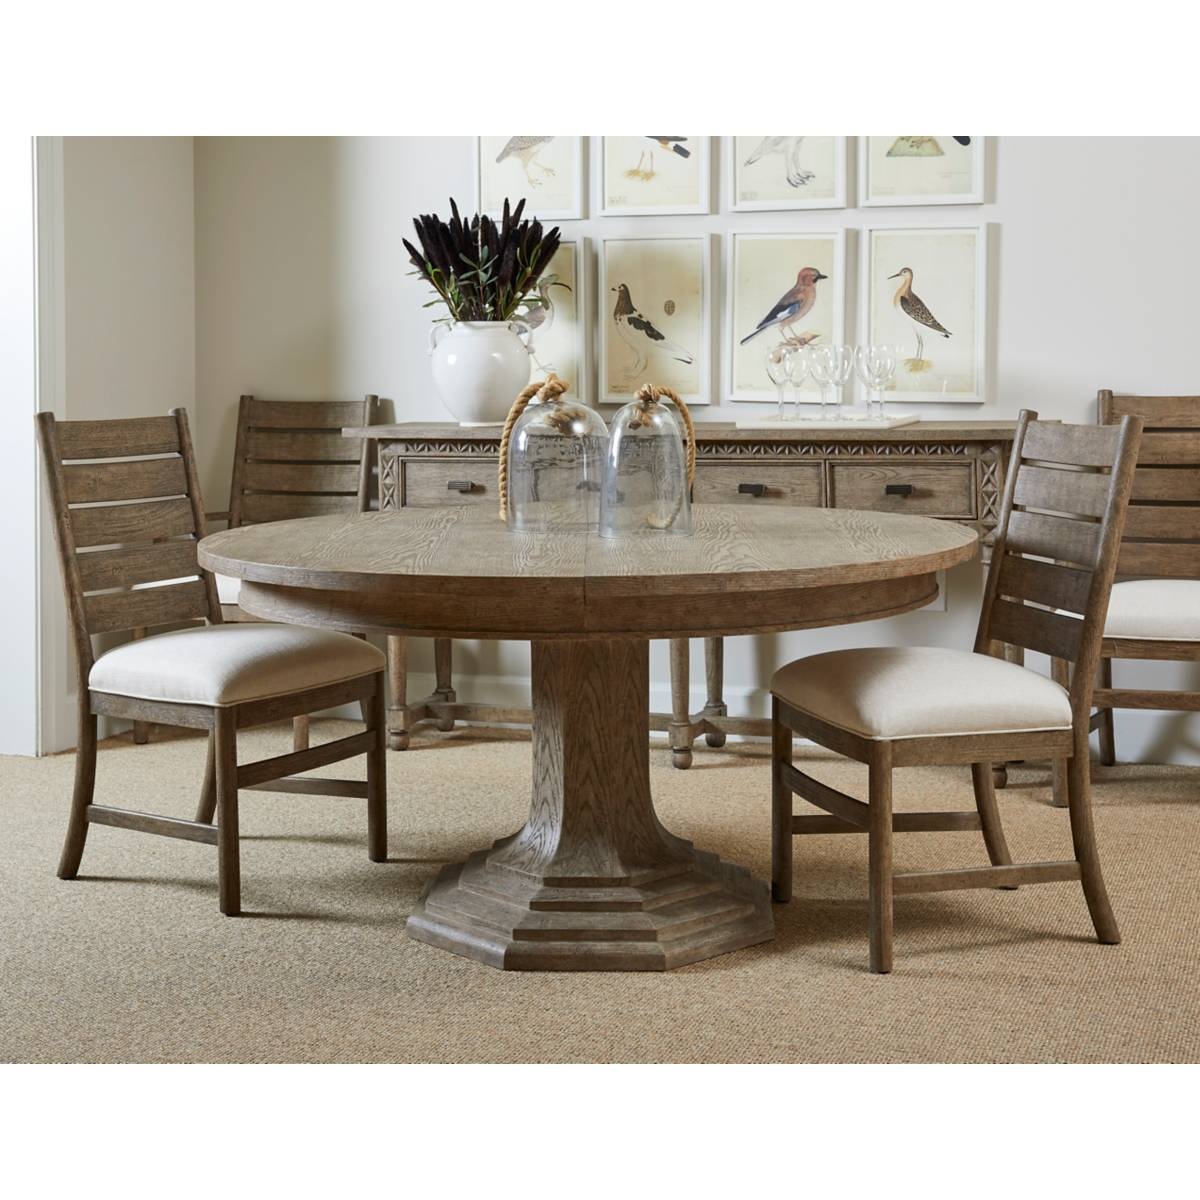 Portico 60 Round Dining Table Stanley Furniture